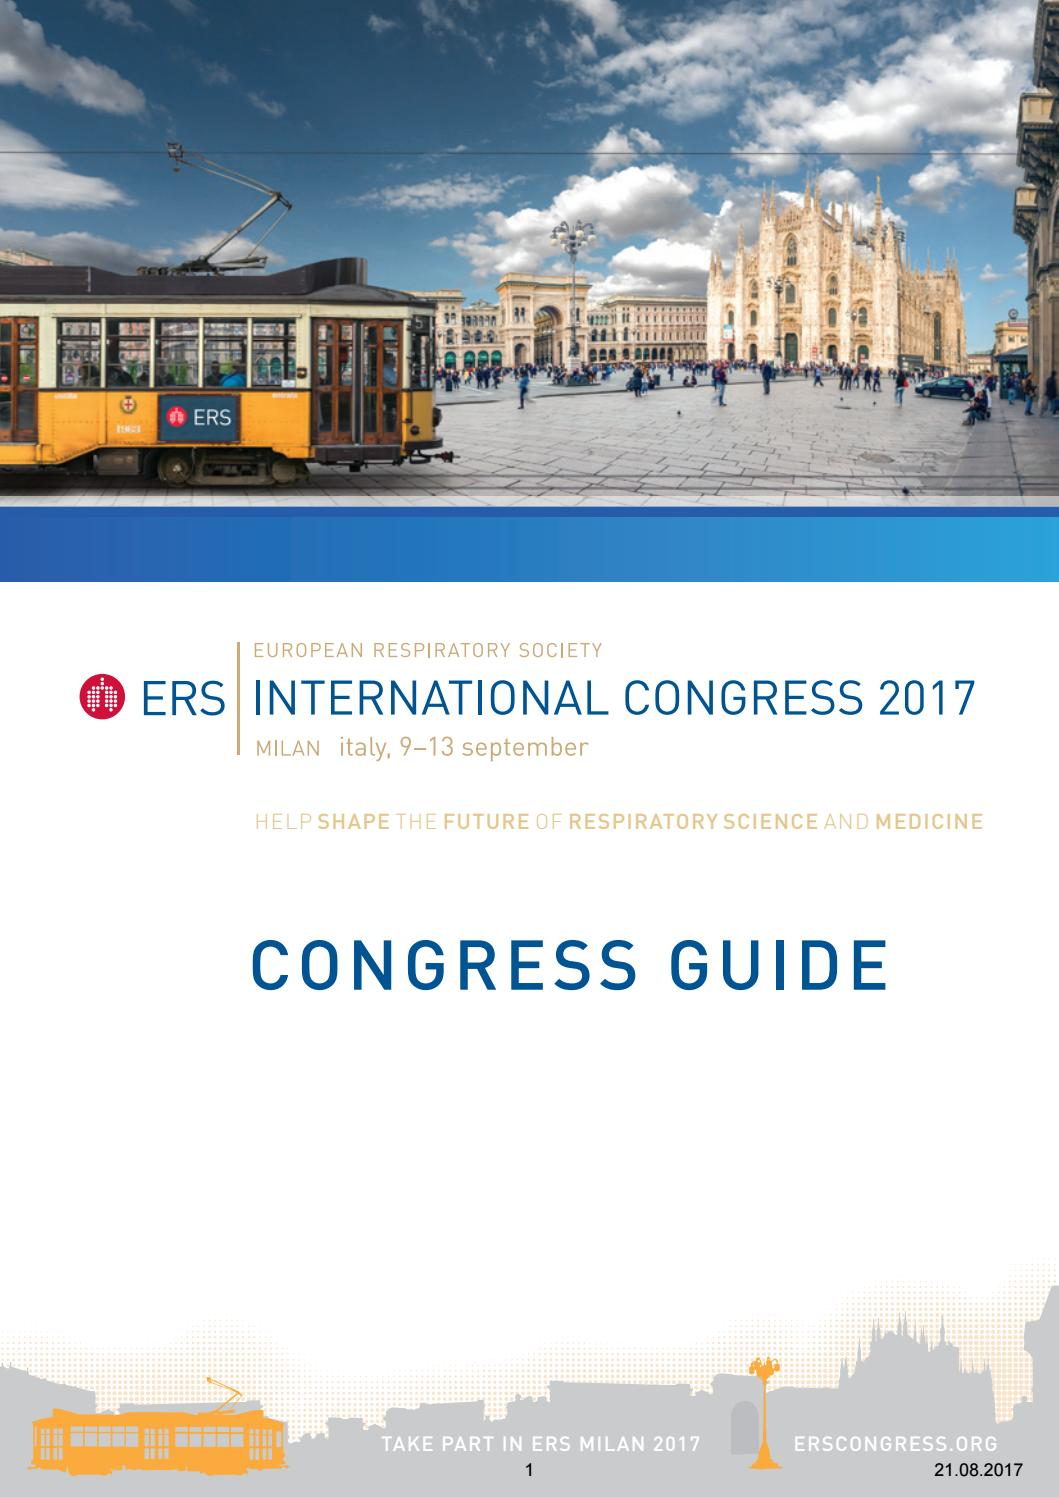 ERS International Congress 2017 Program by Margaritidis